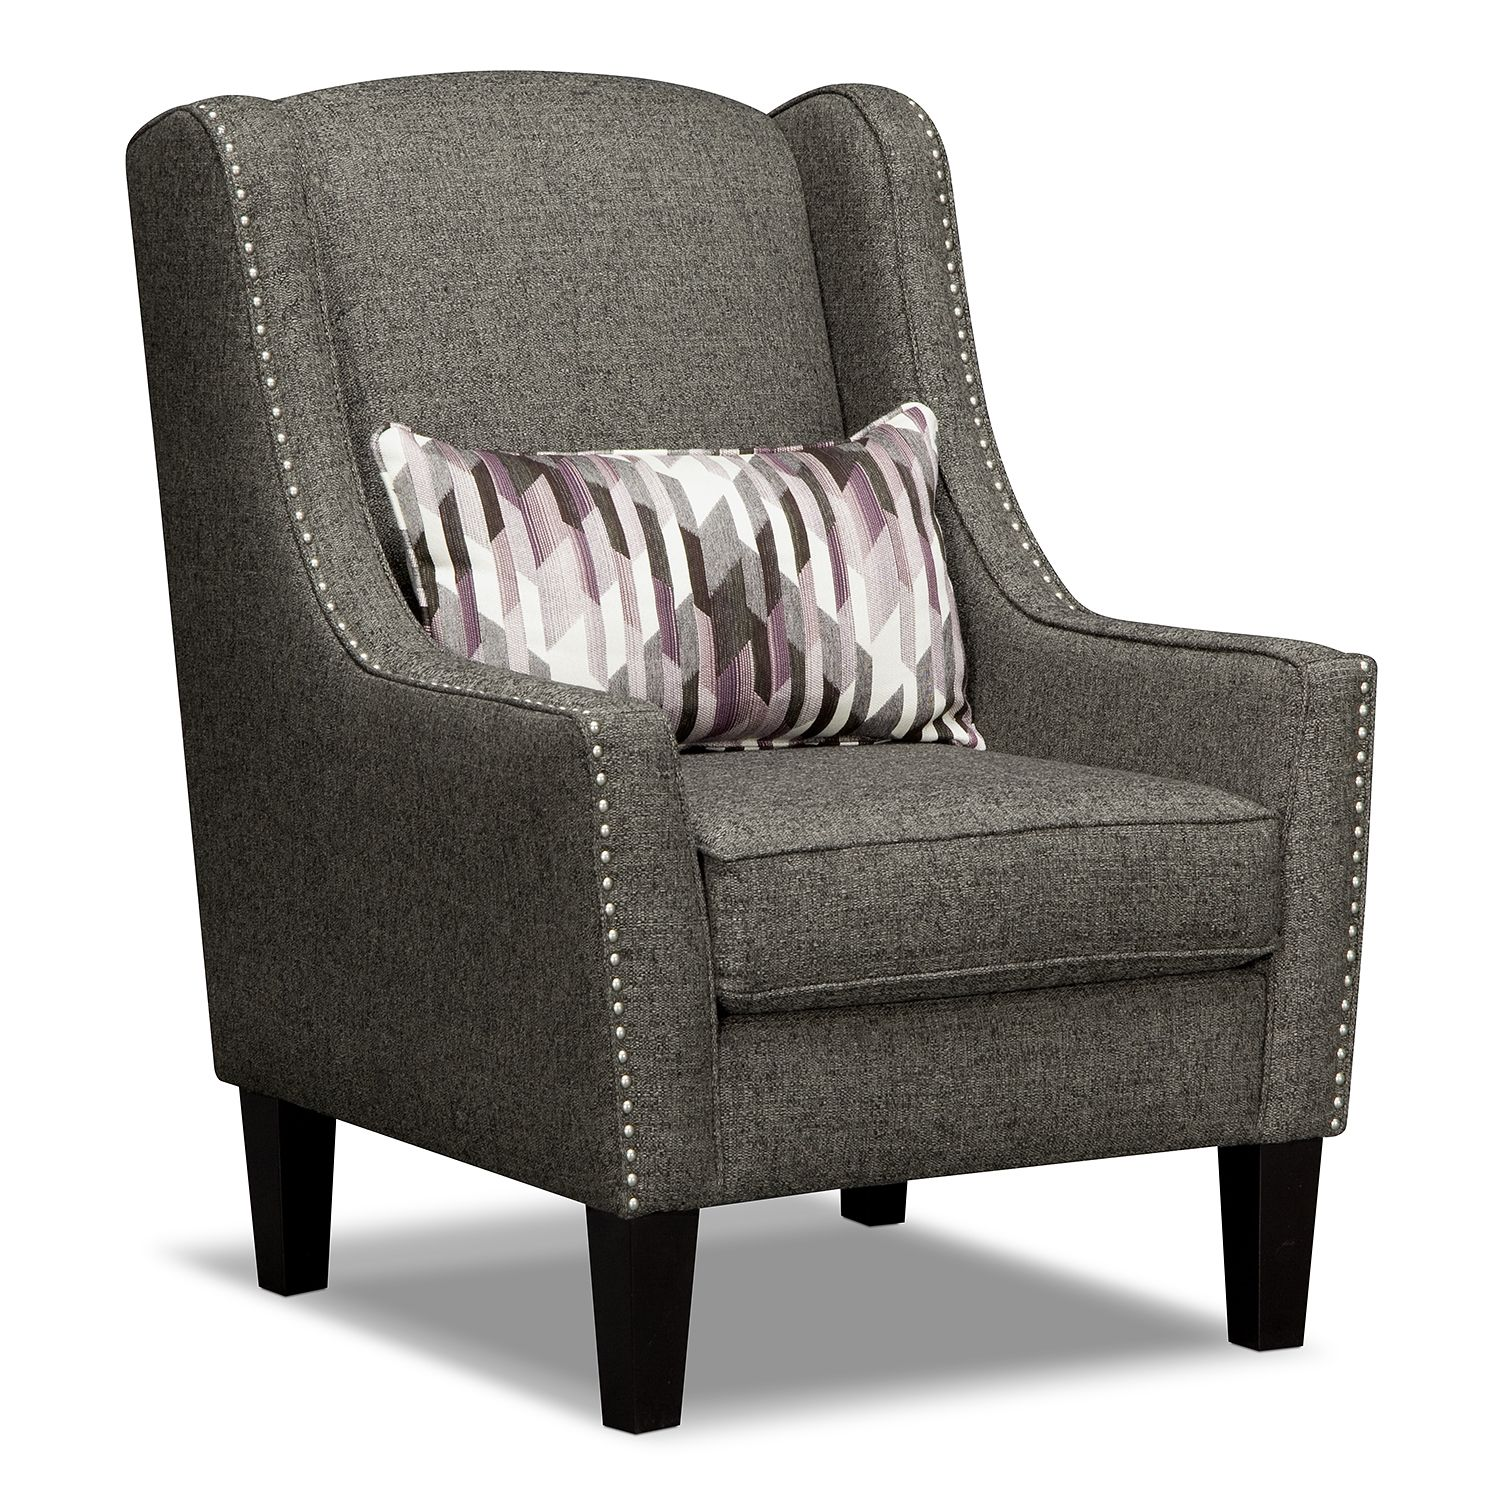 Gray living room chair